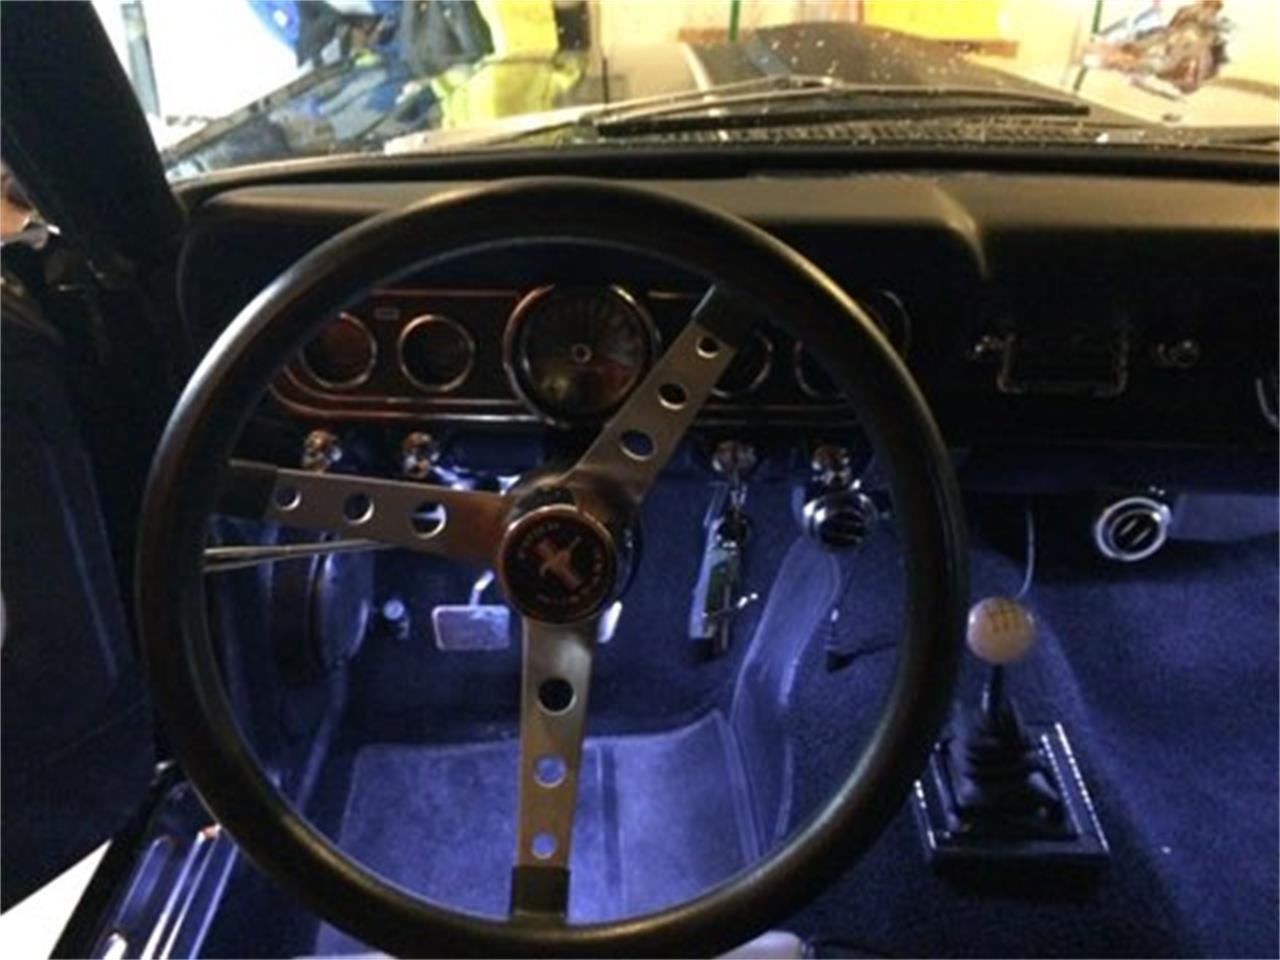 Large Picture of 1966 Ford Mustang - $28,000.00 Offered by a Private Seller - N2TG